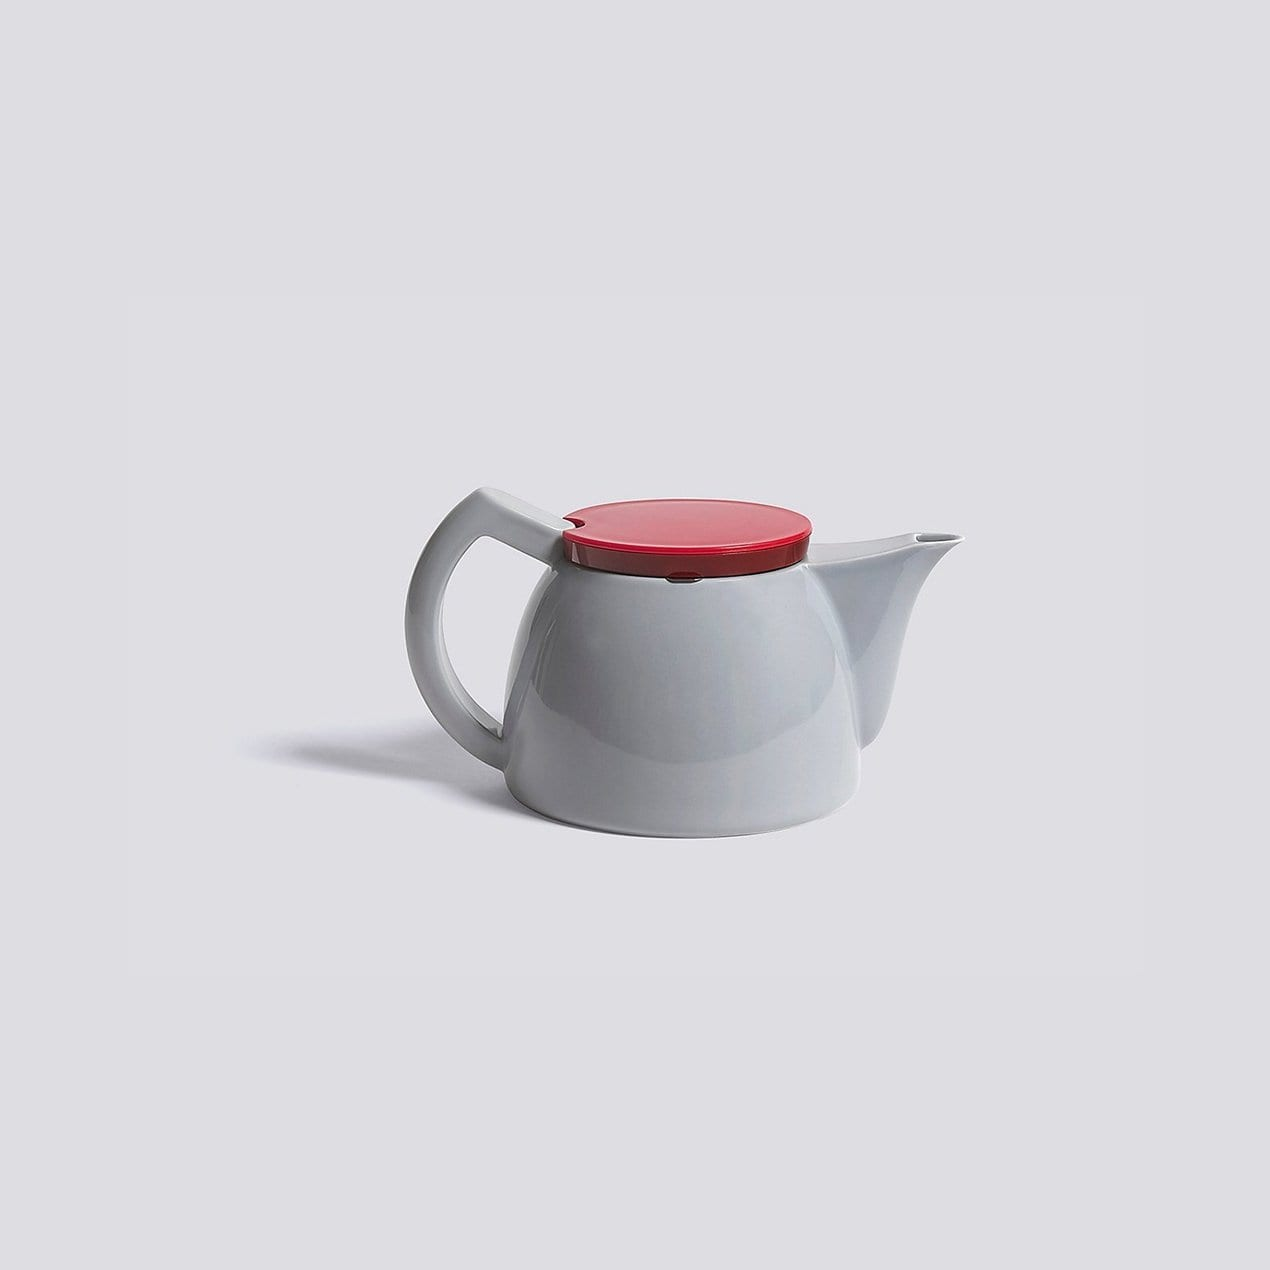 Tea Pot / Neighborhood Goods